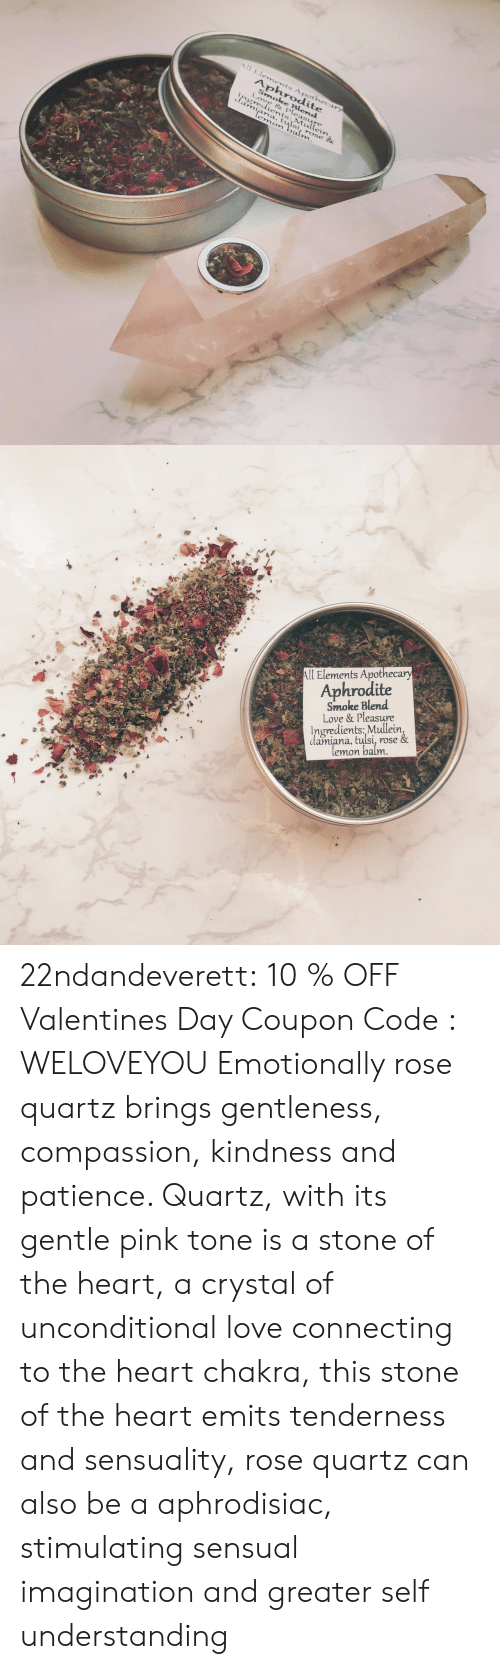 Love, Tumblr, and Valentine's Day: Aphrodite  Love & Pleasure  ngredients:,Mullein  damiana, tulsi, rose   l Elements Apotheca  Aphrodite  Smoke Blend  Love & Pleasure  Ingredients: Mullein  damiana, tuisL, rose  emon batt 22ndandeverett: 10 % OFF Valentines Day Coupon Code : WELOVEYOU Emotionally rose quartz brings gentleness, compassion, kindness and patience. Quartz, with its gentle pink tone is a stone of the heart, a crystal of unconditional love connecting to the heart chakra, this stone of the heart emits tenderness and sensuality, rose quartz can also be a aphrodisiac, stimulating sensual imagination and greater self understanding